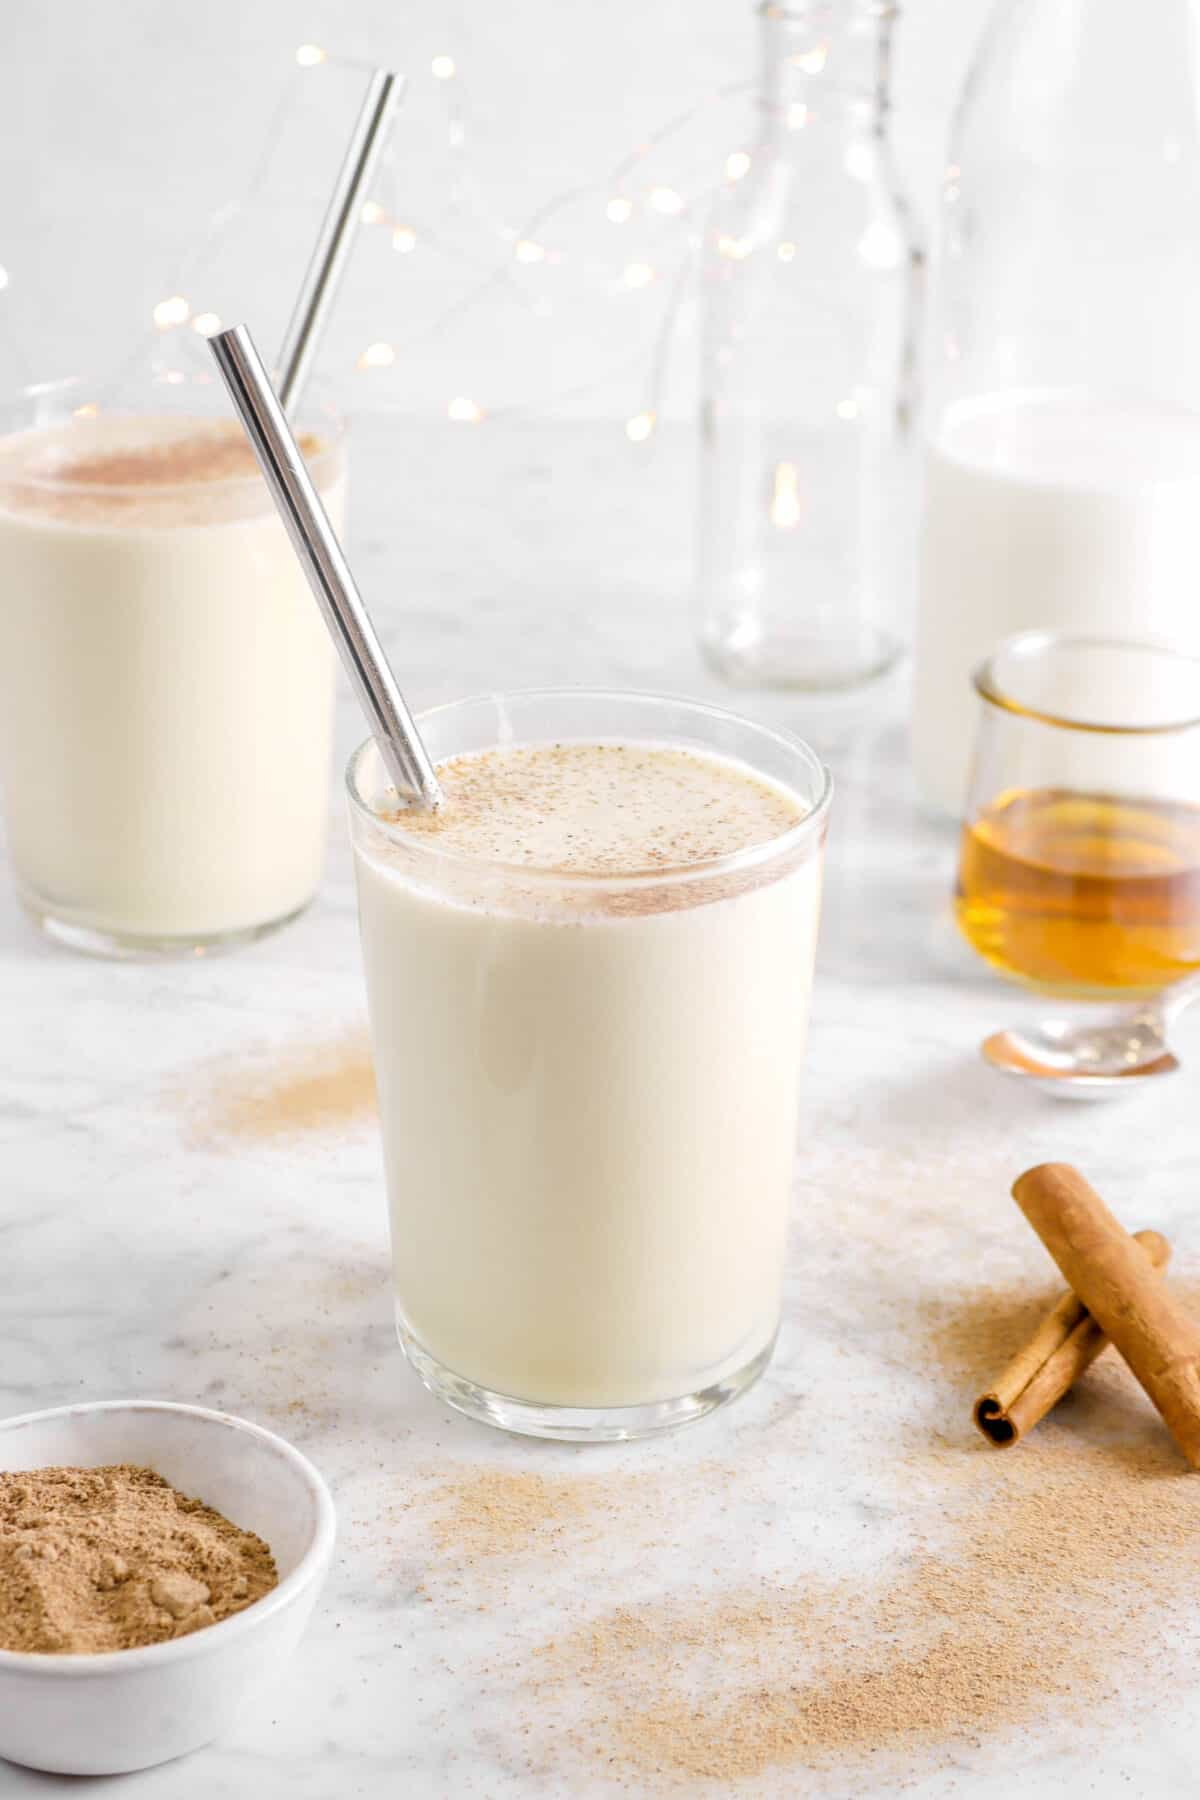 eggnog in glasses with cinnamon sticks, bowl of ground nutmeg, bourbon, and milk behind